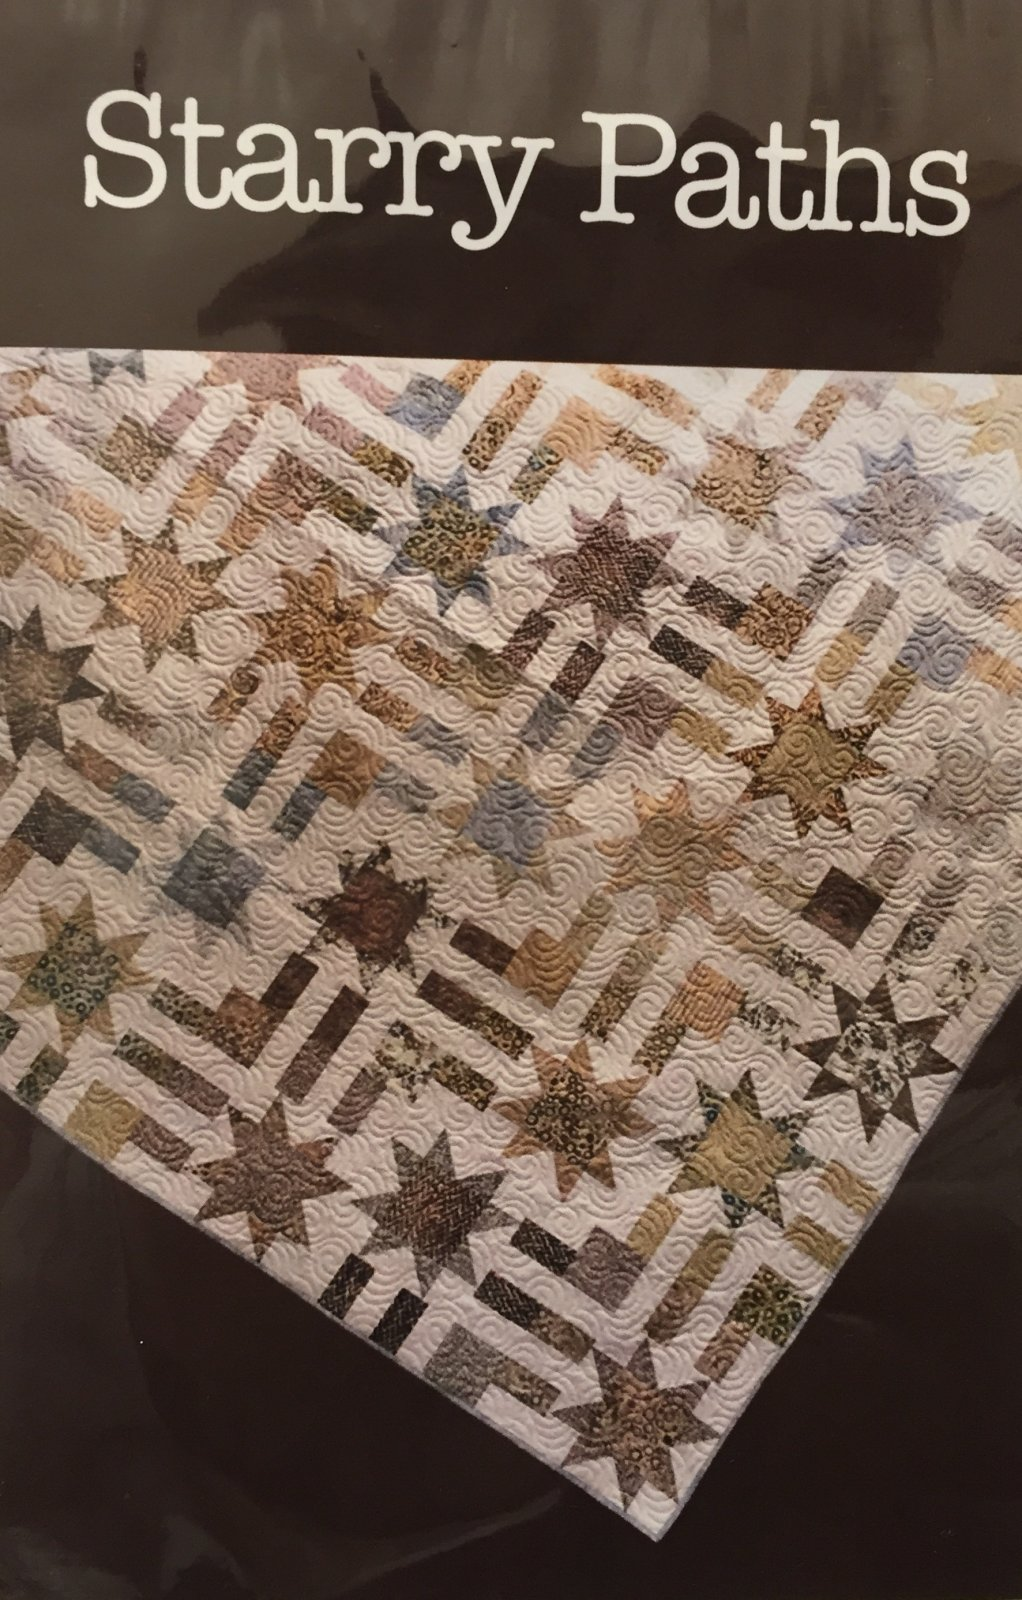 Starry Paths Quilt Pattern - 84 1/2 x 84 1/2